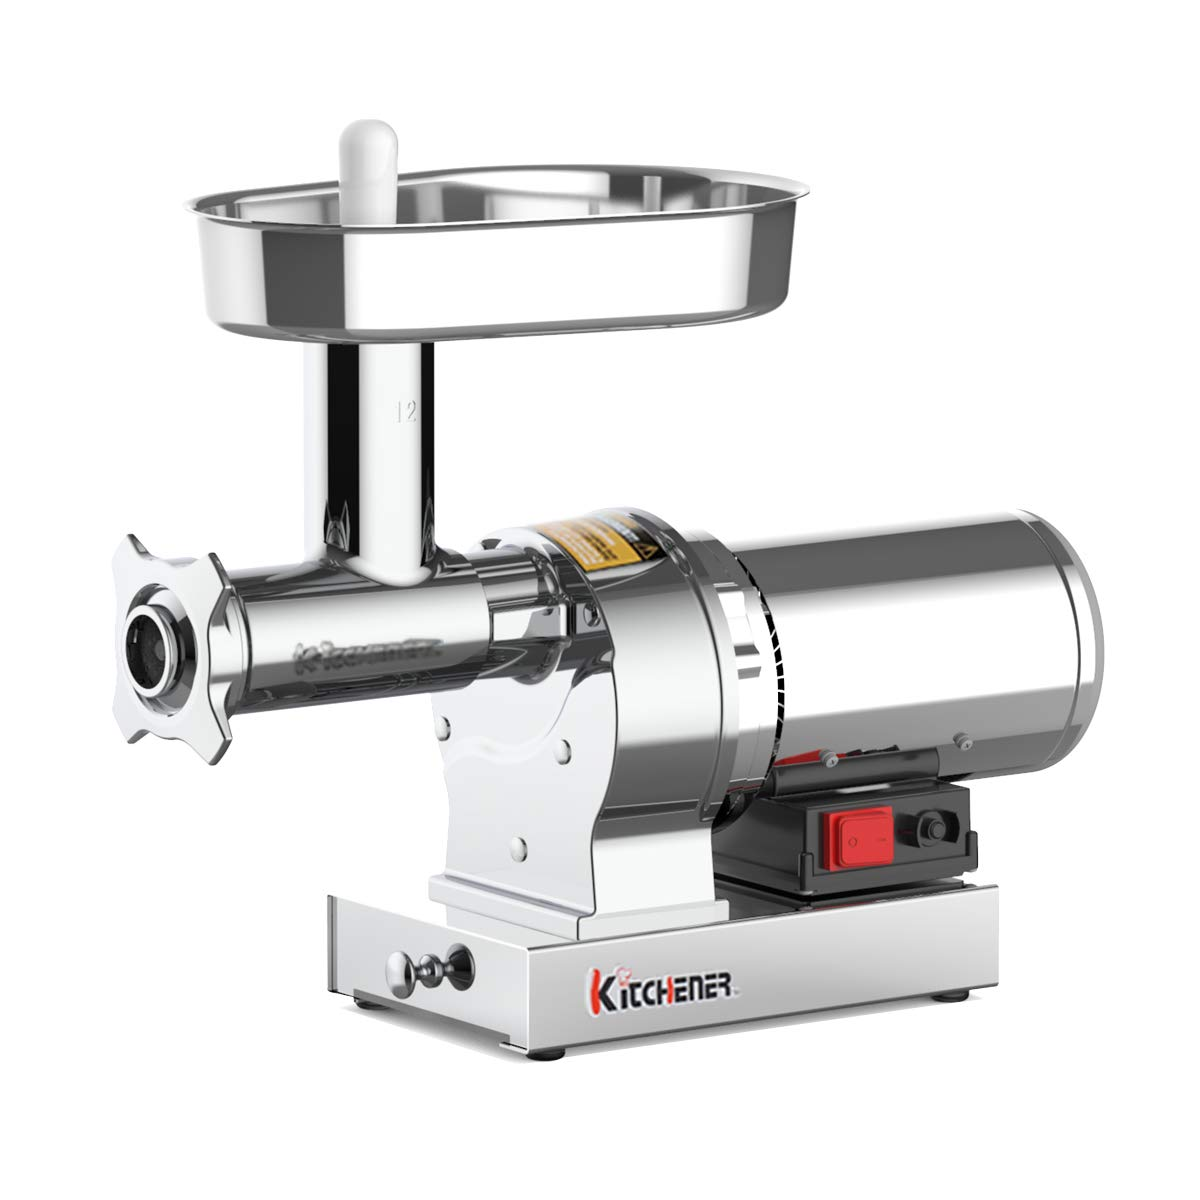 You Can Consider These Things When Buying Electric Meat Grinders